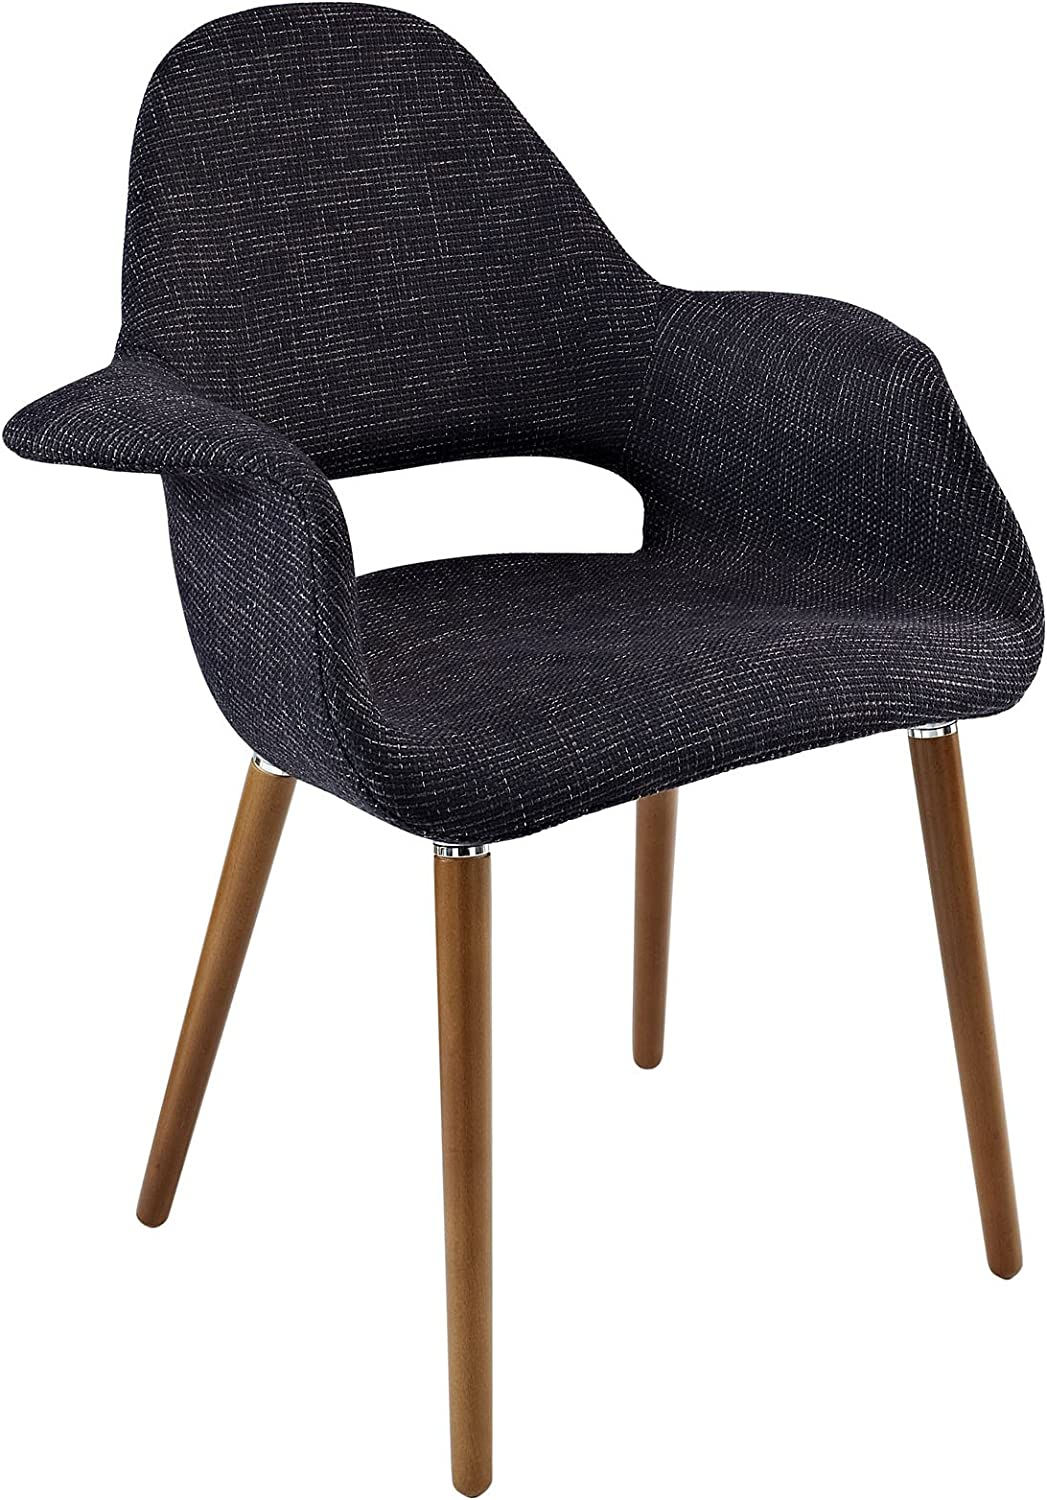 Modway Veer Accent Chair, Black